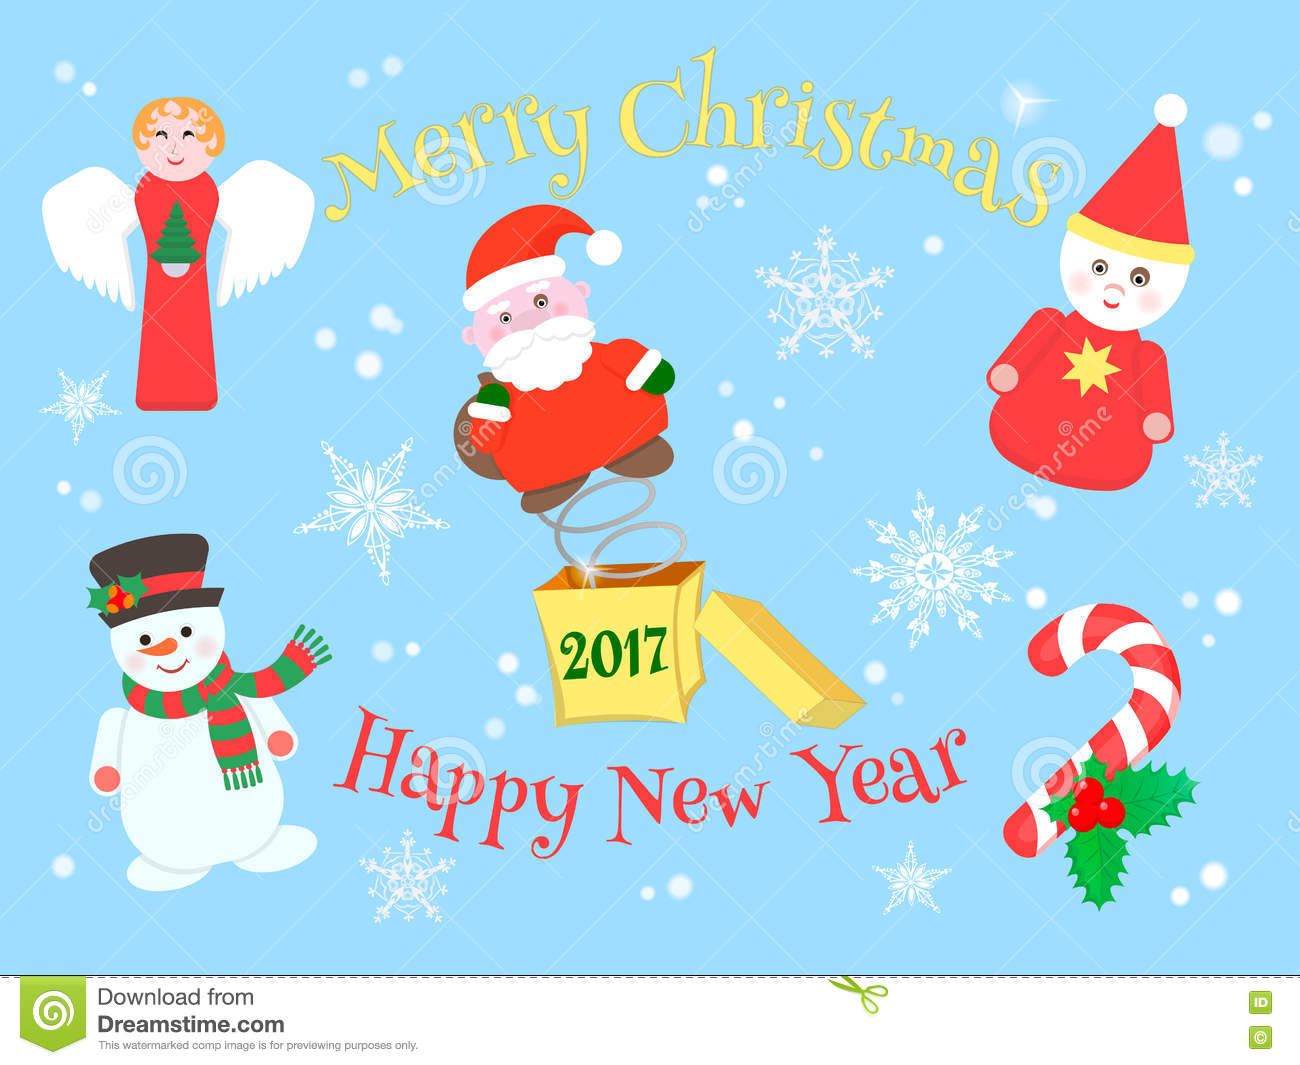 ongratulations on christmas and new year